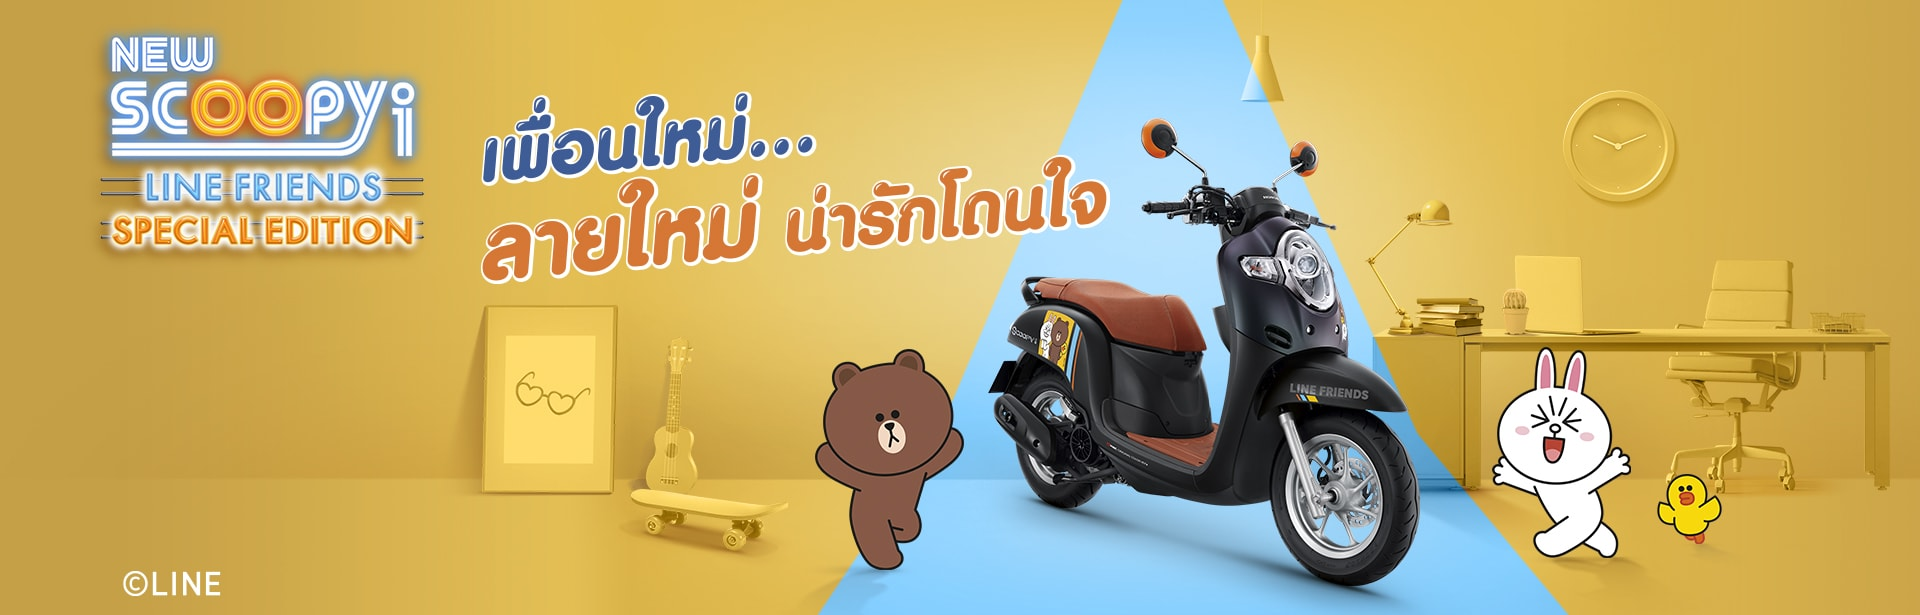 new-scoopy-i-line-friends